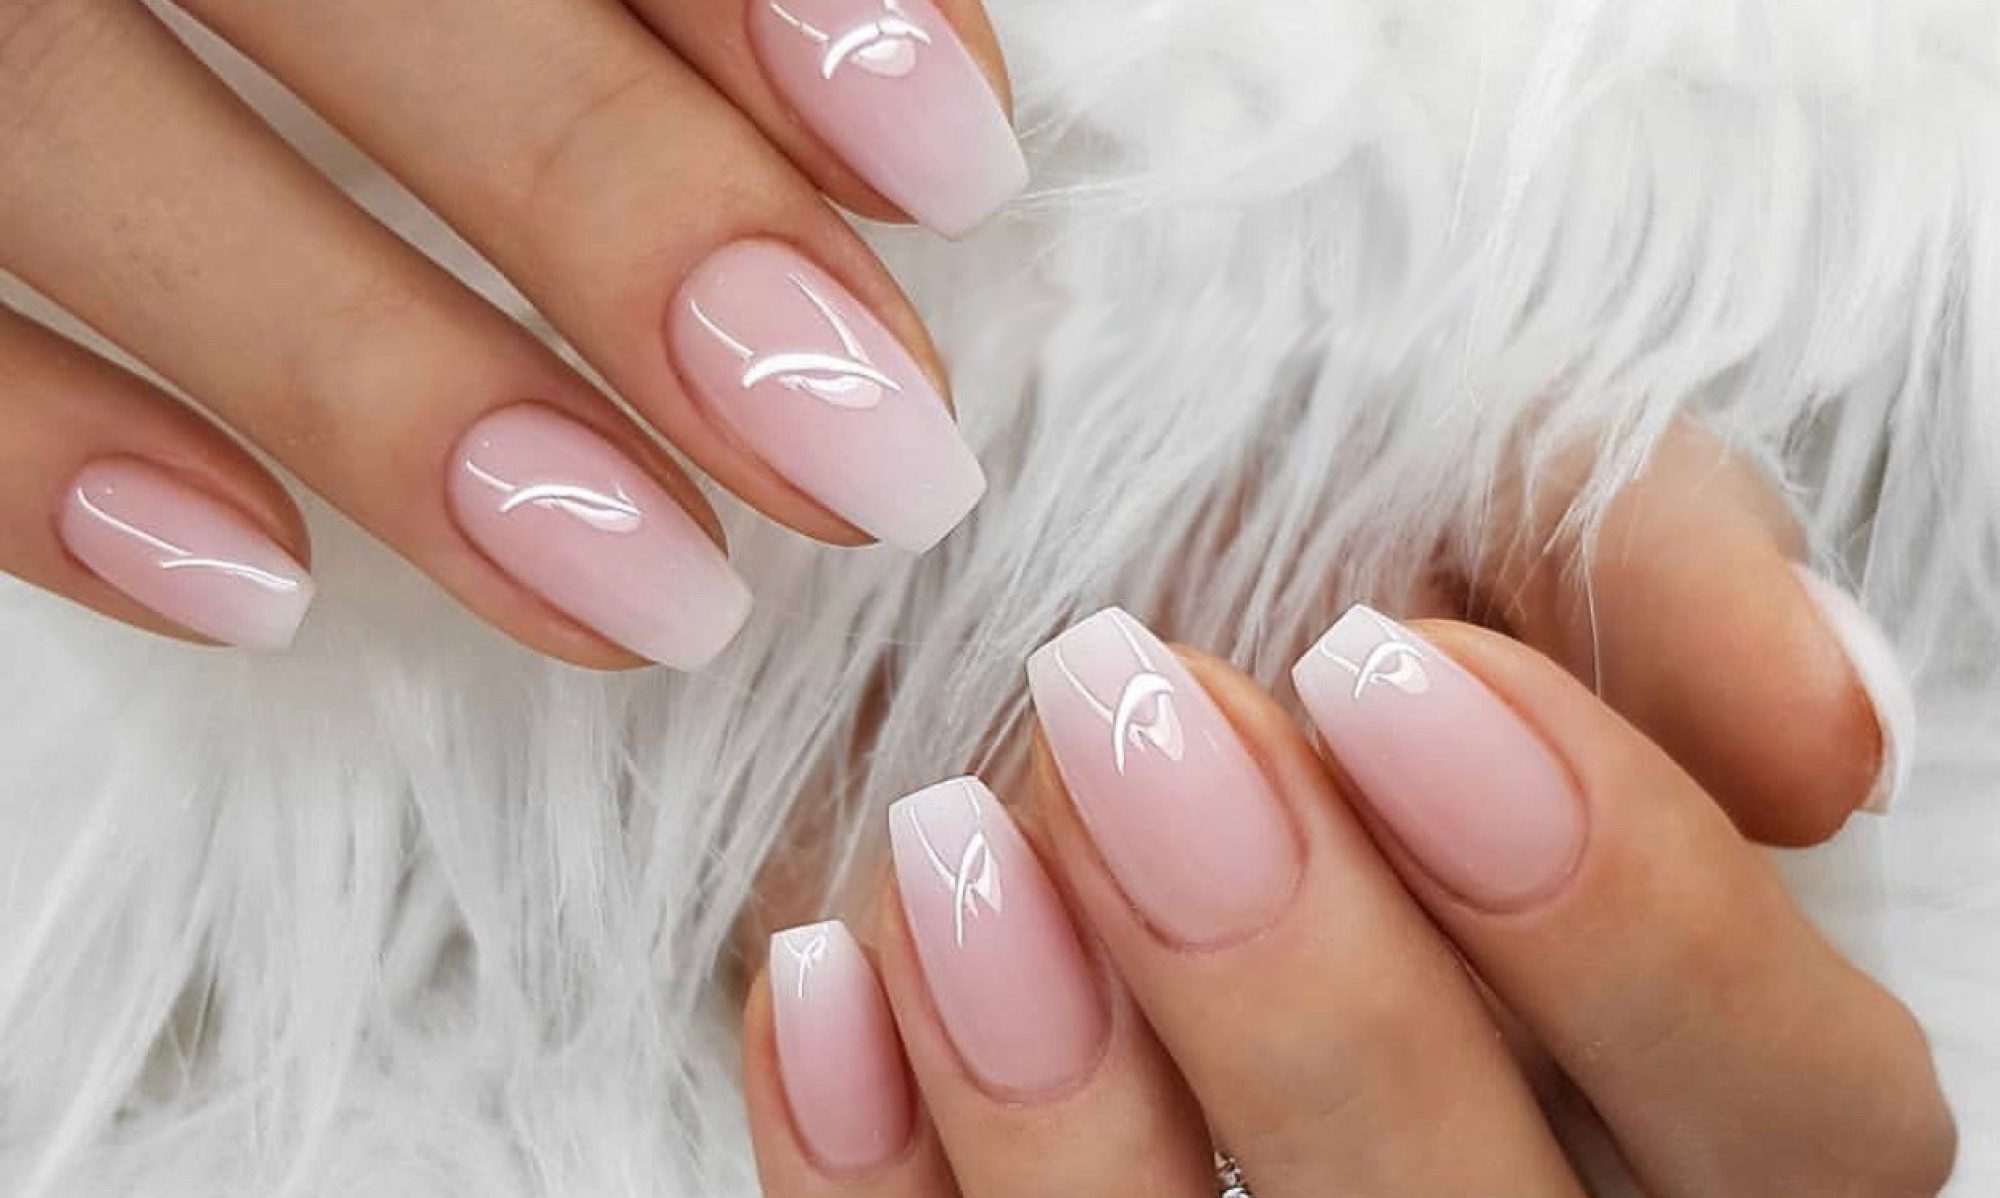 Fashion Nails & Spa